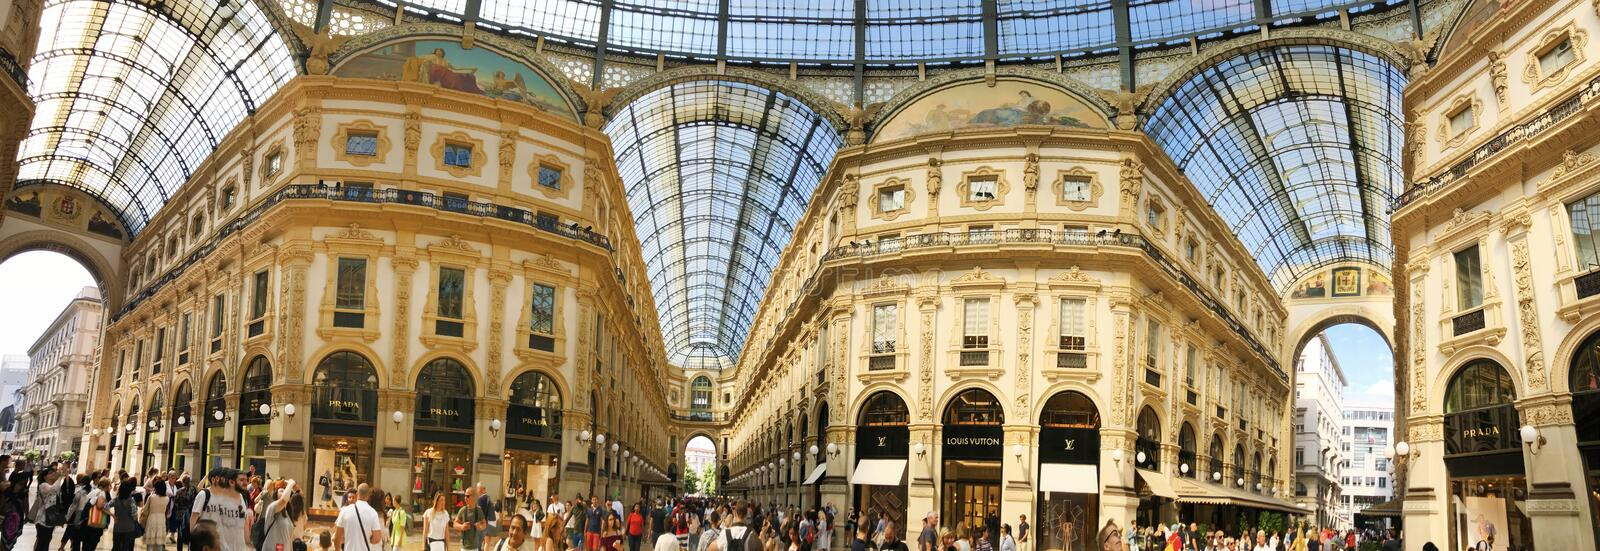 Galleria Vittorio Emanuele II in Milan ,Italy. MILAN, ITALY - JUNE 27,2018 : Galleria Vittorio Emanuele II in Milan is one of the most popular shopping areas in royalty free stock image